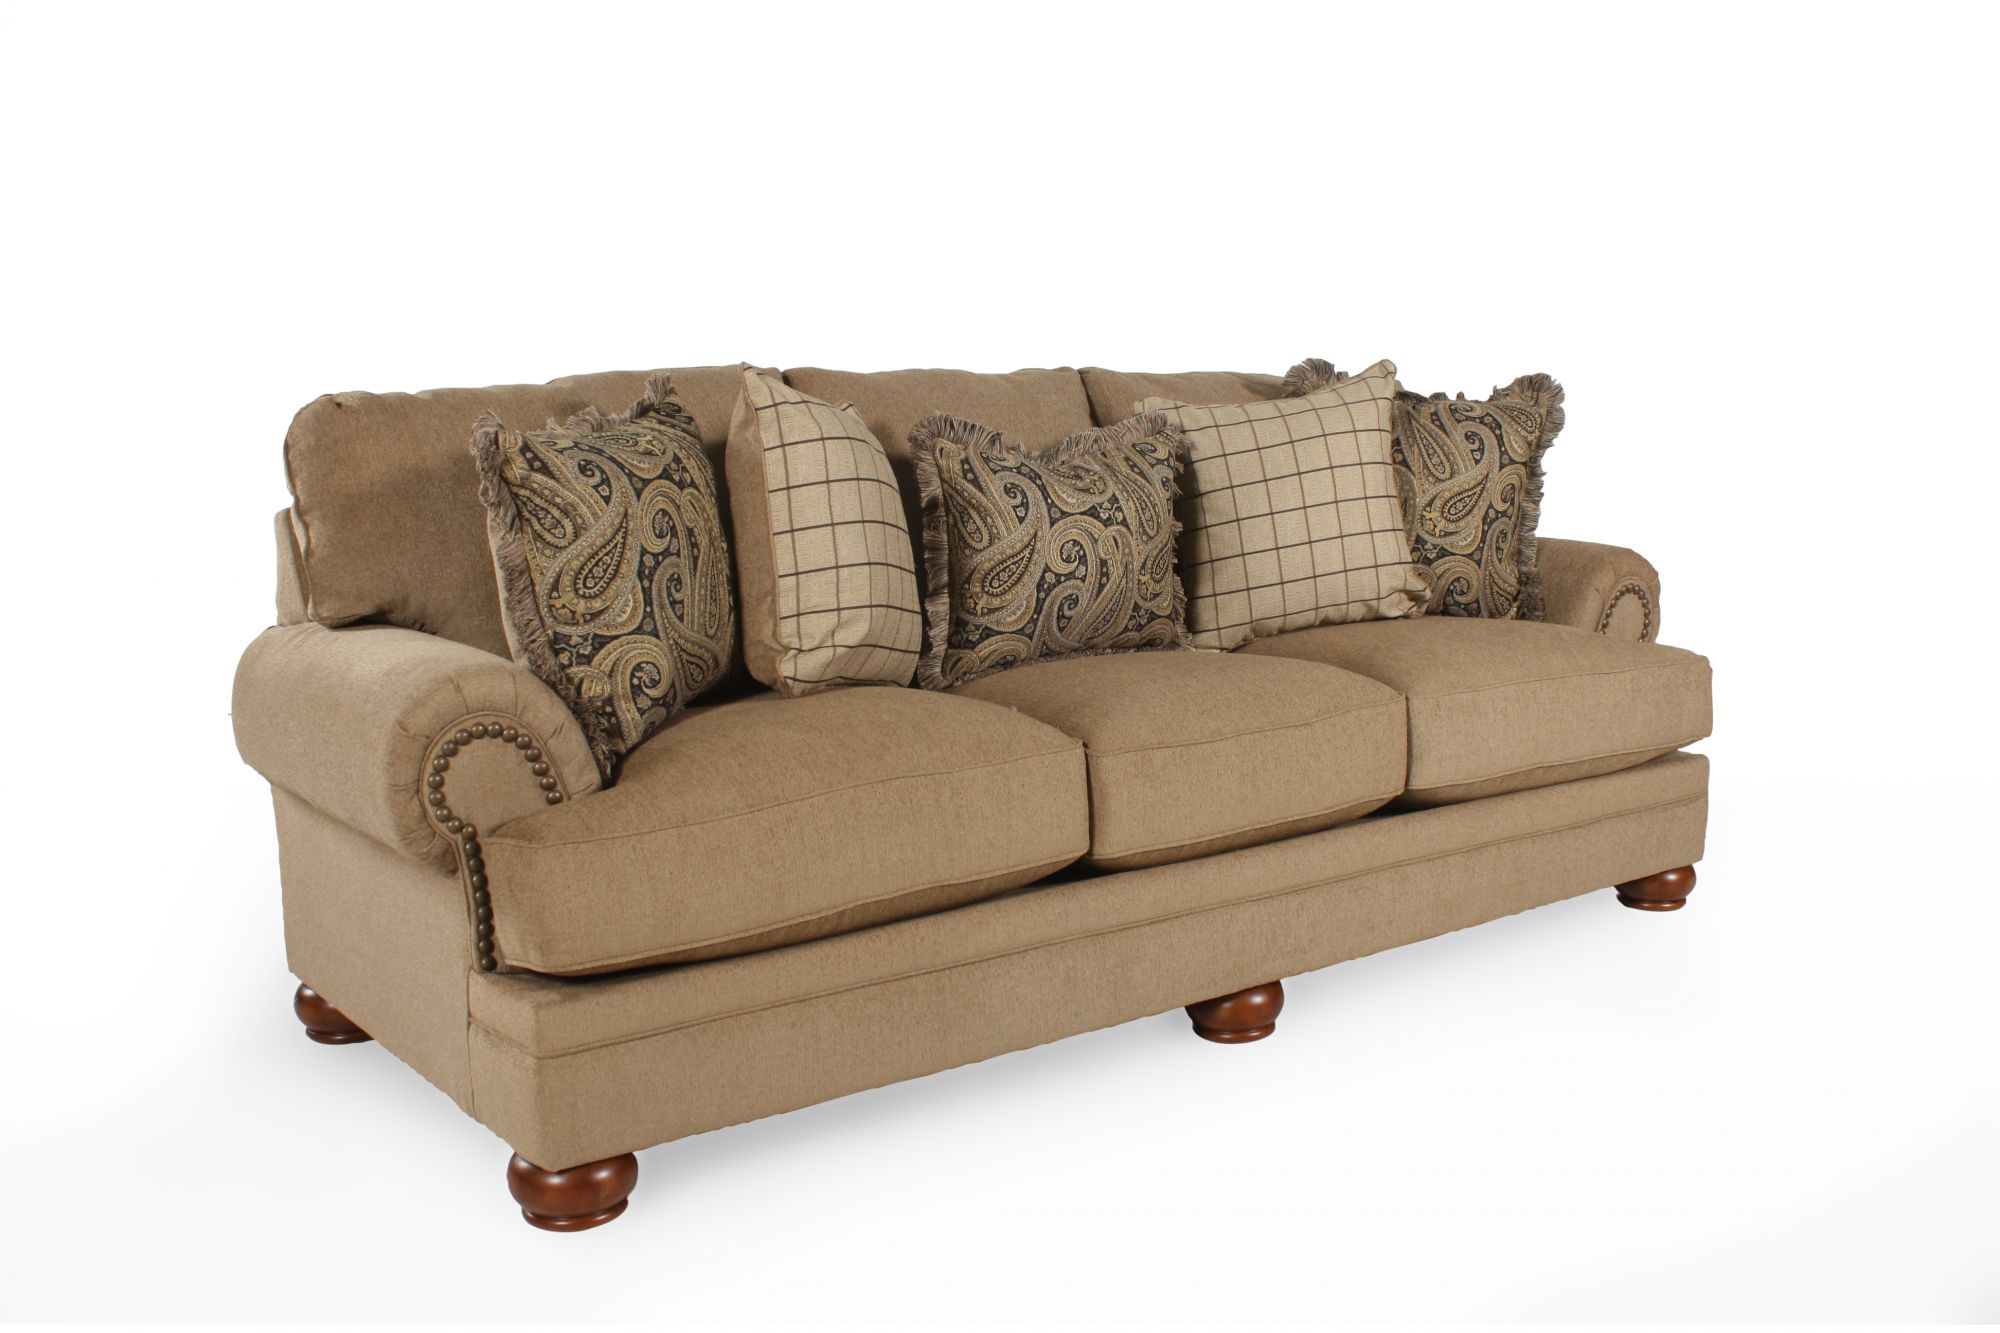 Stylish ashley furniture columbus ga for living room ideas with ashley furniture columbus ohio